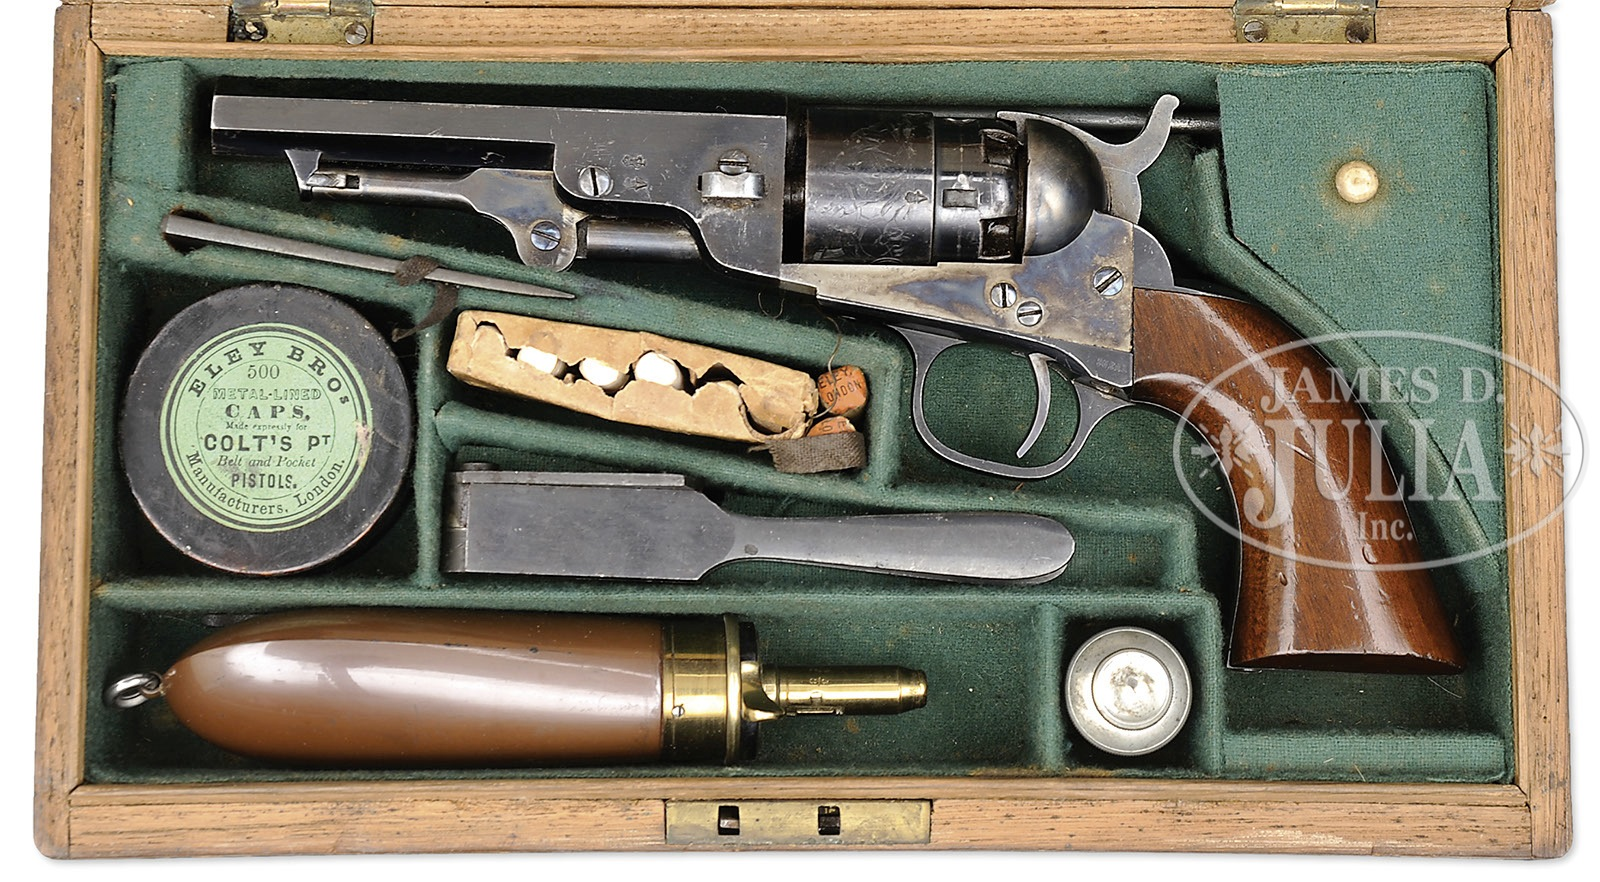 exceptional and rare cased london colt model 1862 pocket navy